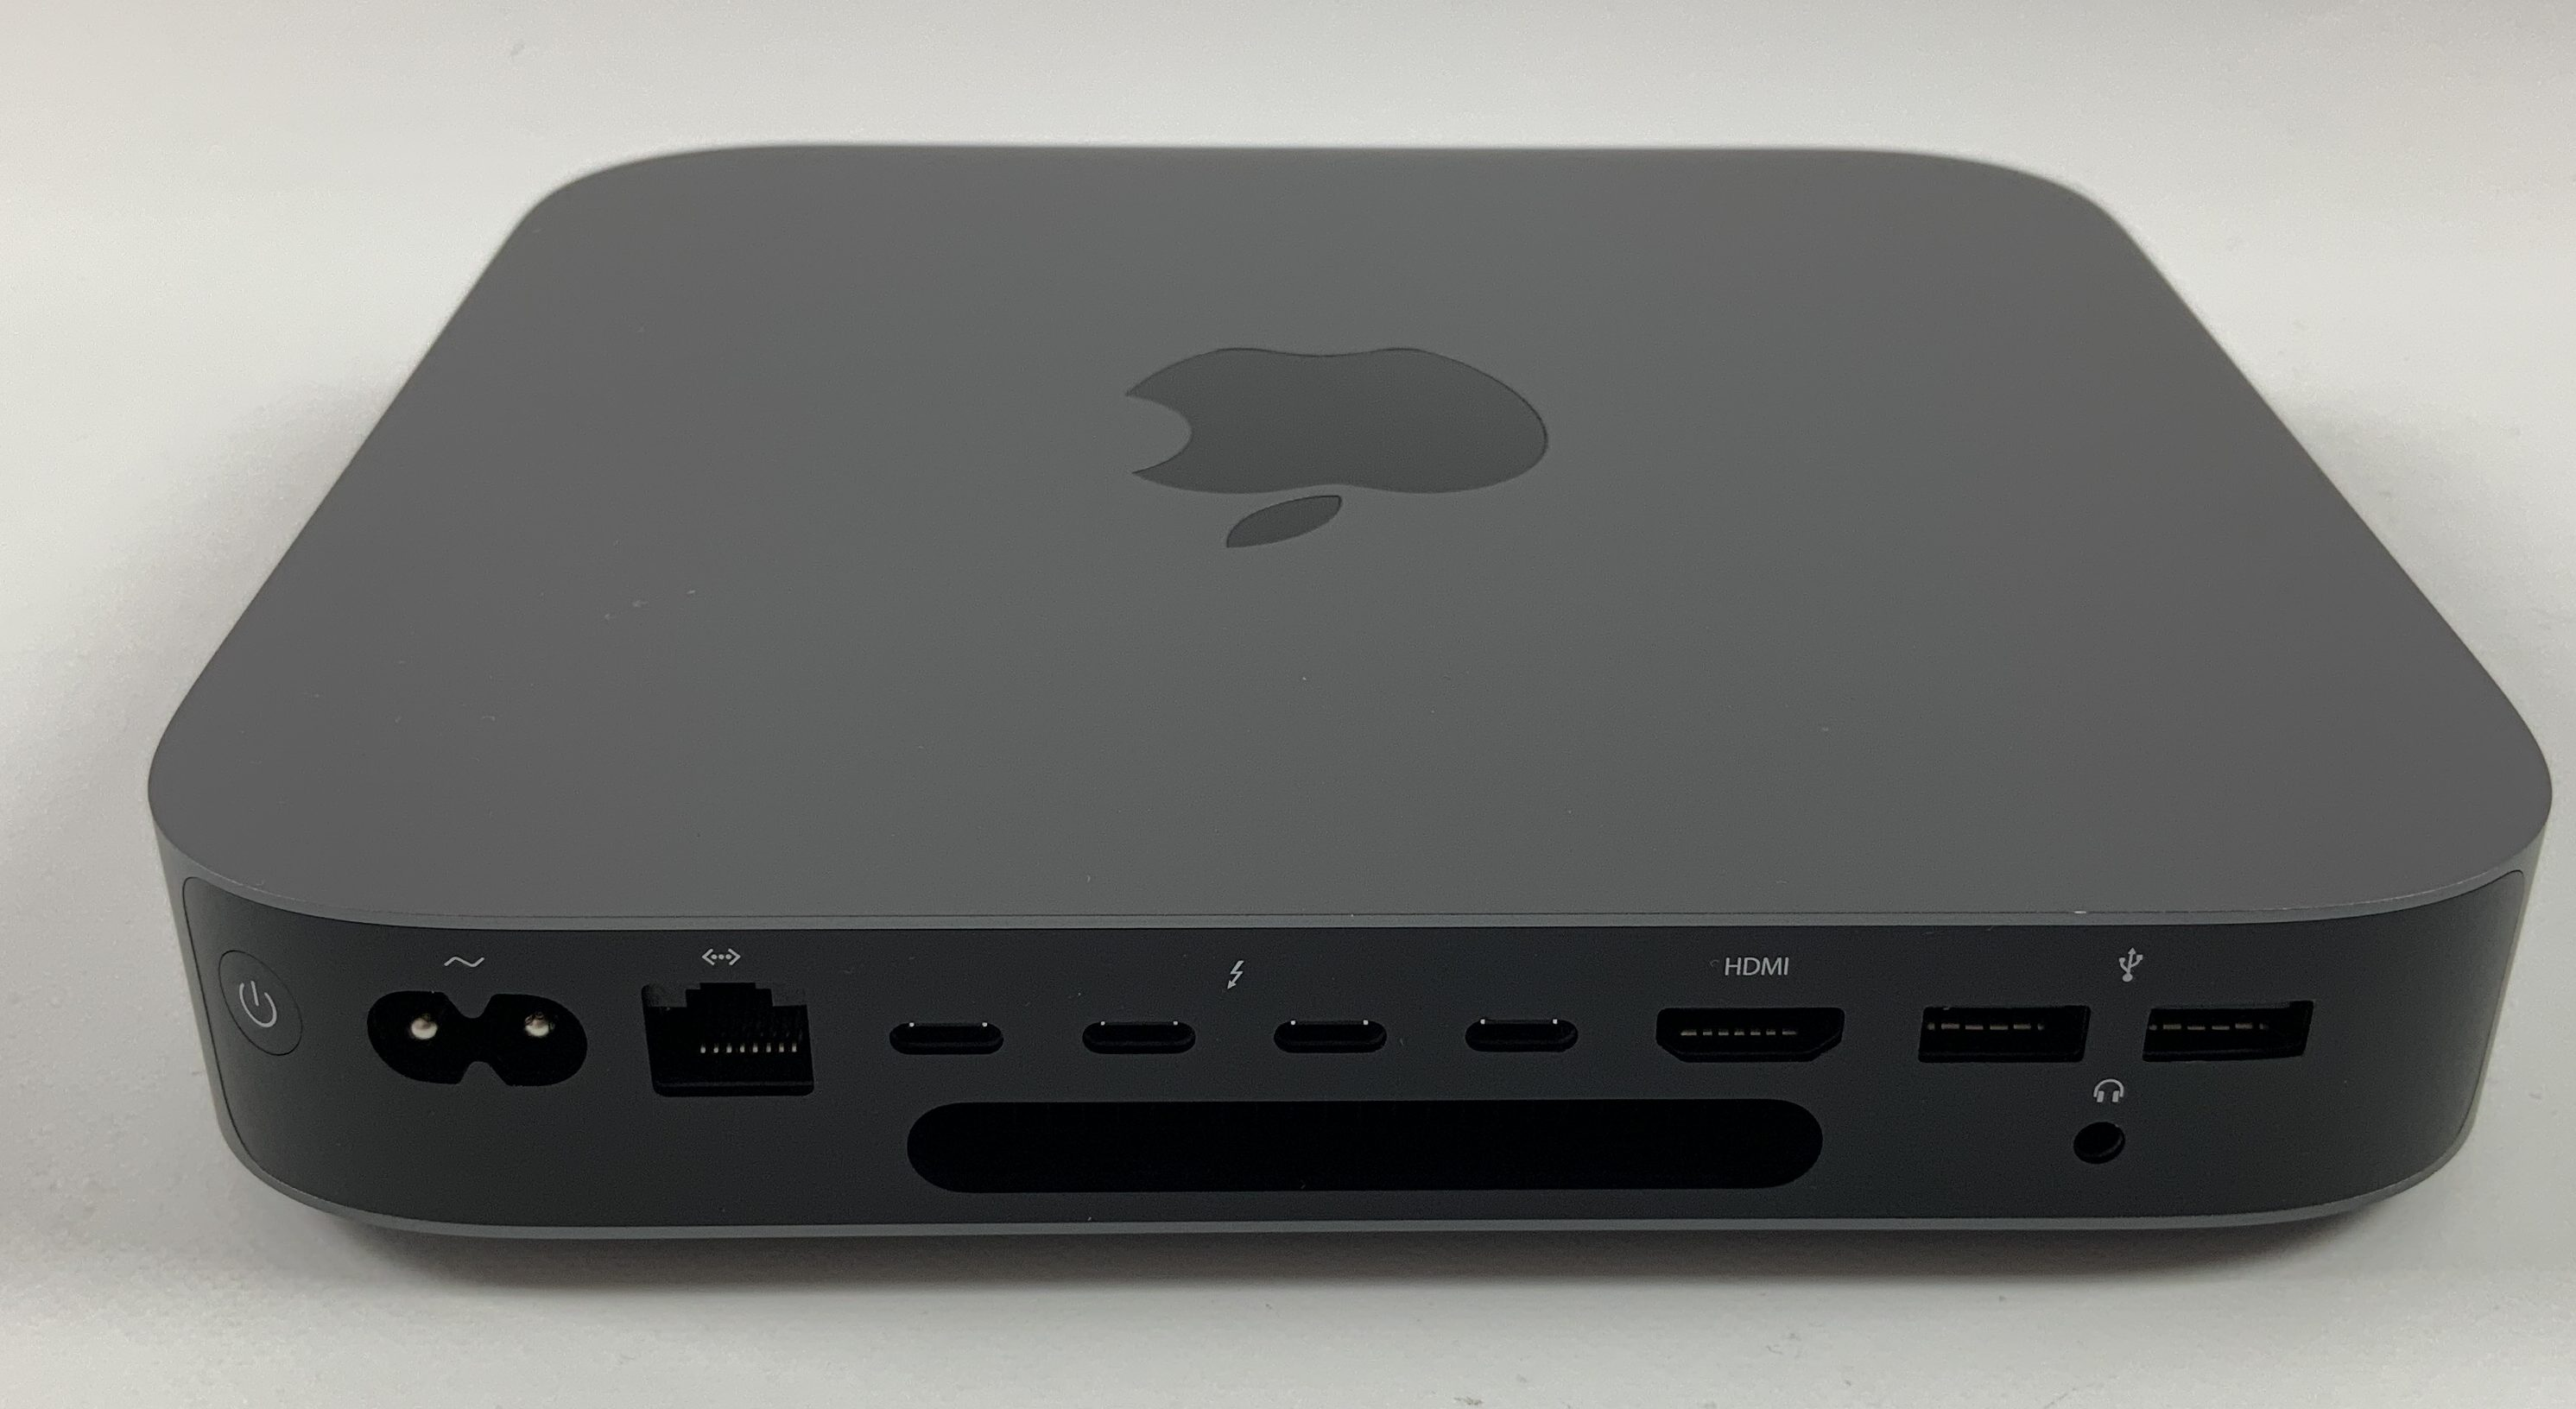 Mac Mini Late 2018 (Intel 6-Core i5 3.0 GHz 32 GB RAM 256 GB SSD), Intel 6-Core i5 3.0 GHz, 32 GB RAM, 256 GB SSD, Kuva 4